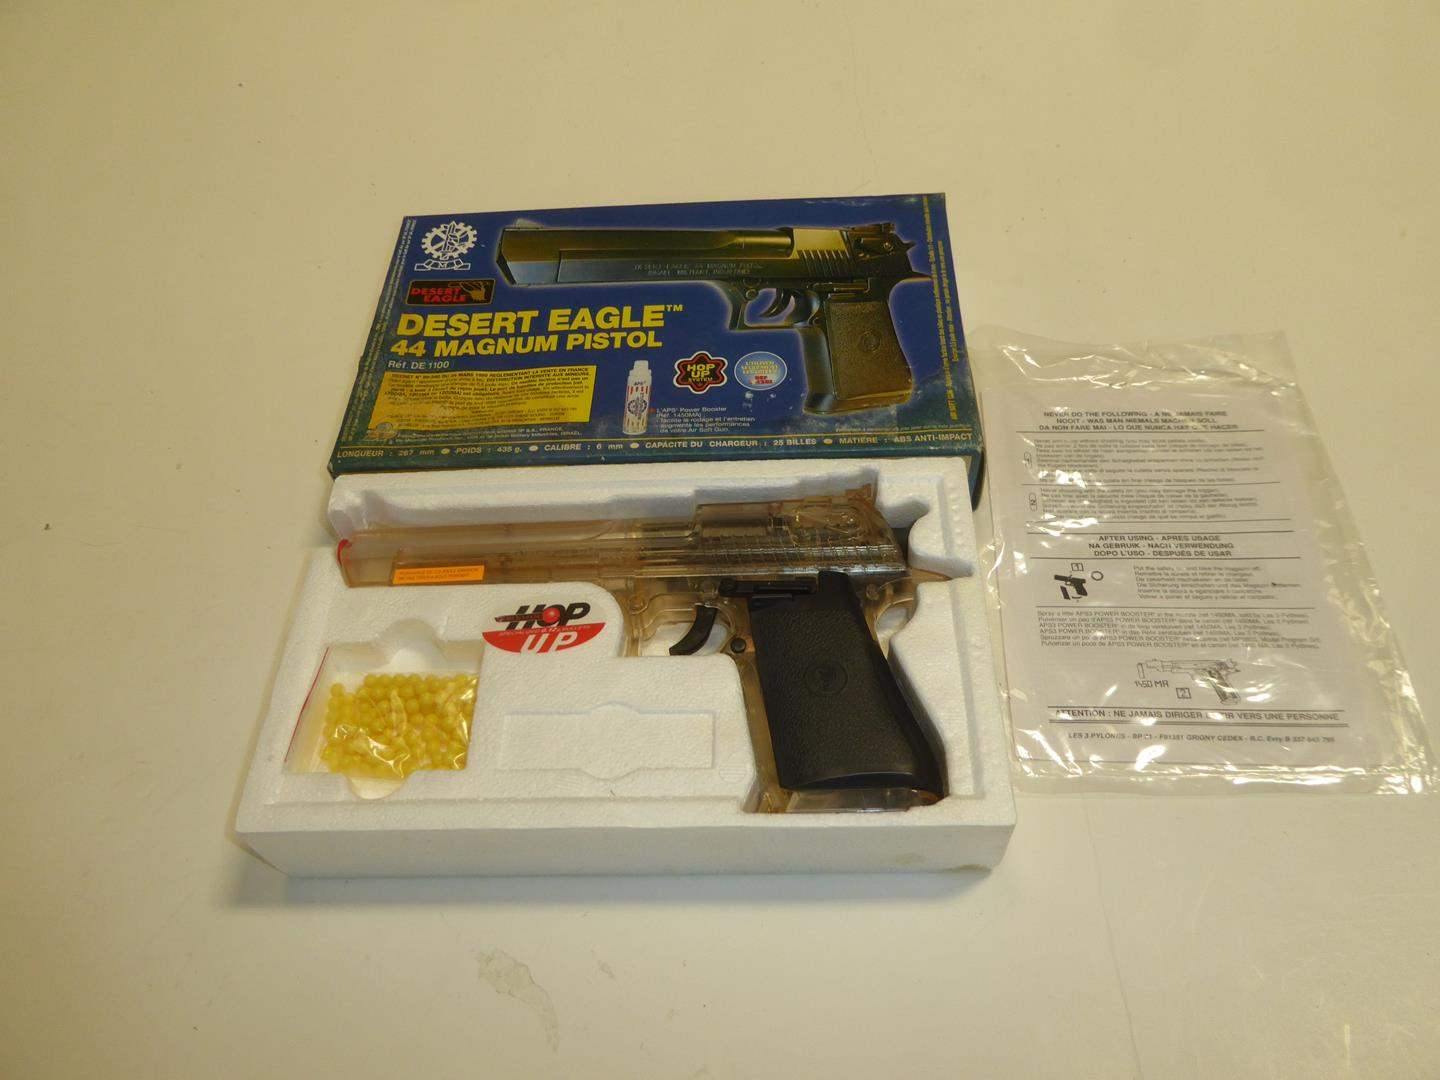 Lot # 98 - Desert Eagle 44 Magnum Pistol Plastic Air Soft Gun (main image)